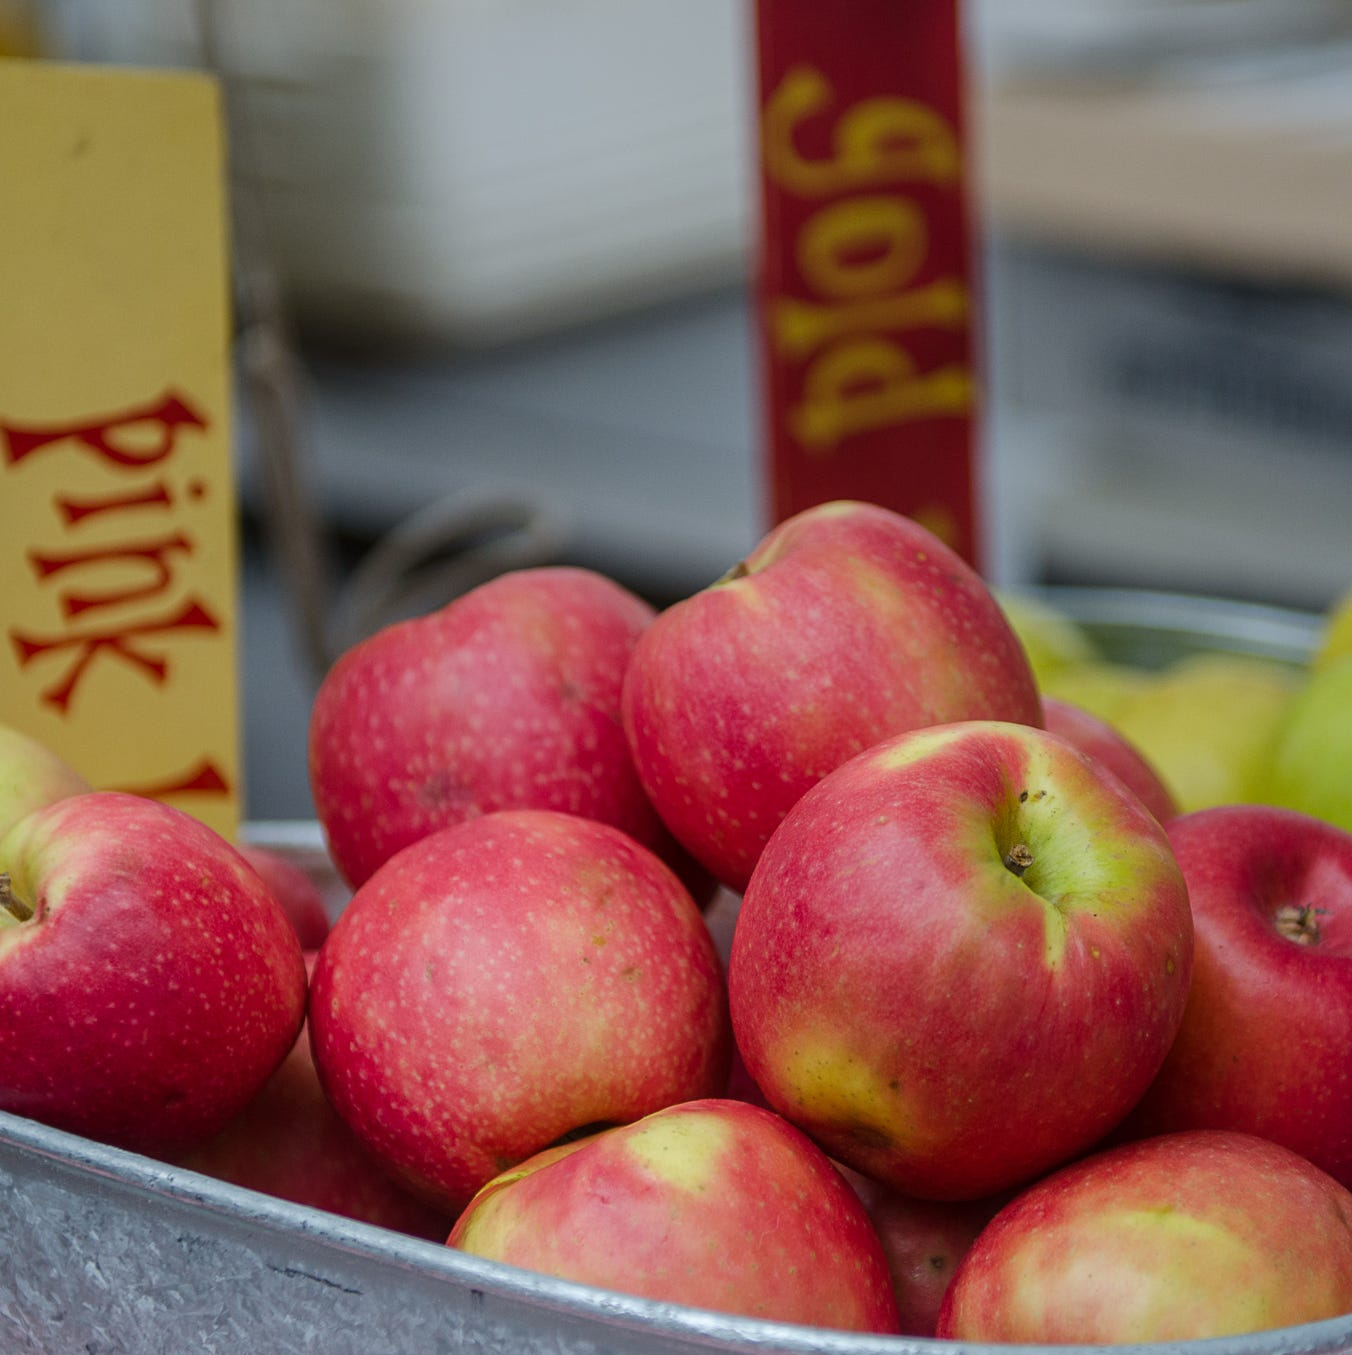 Tailgate Market Report: Shop for apples during winter